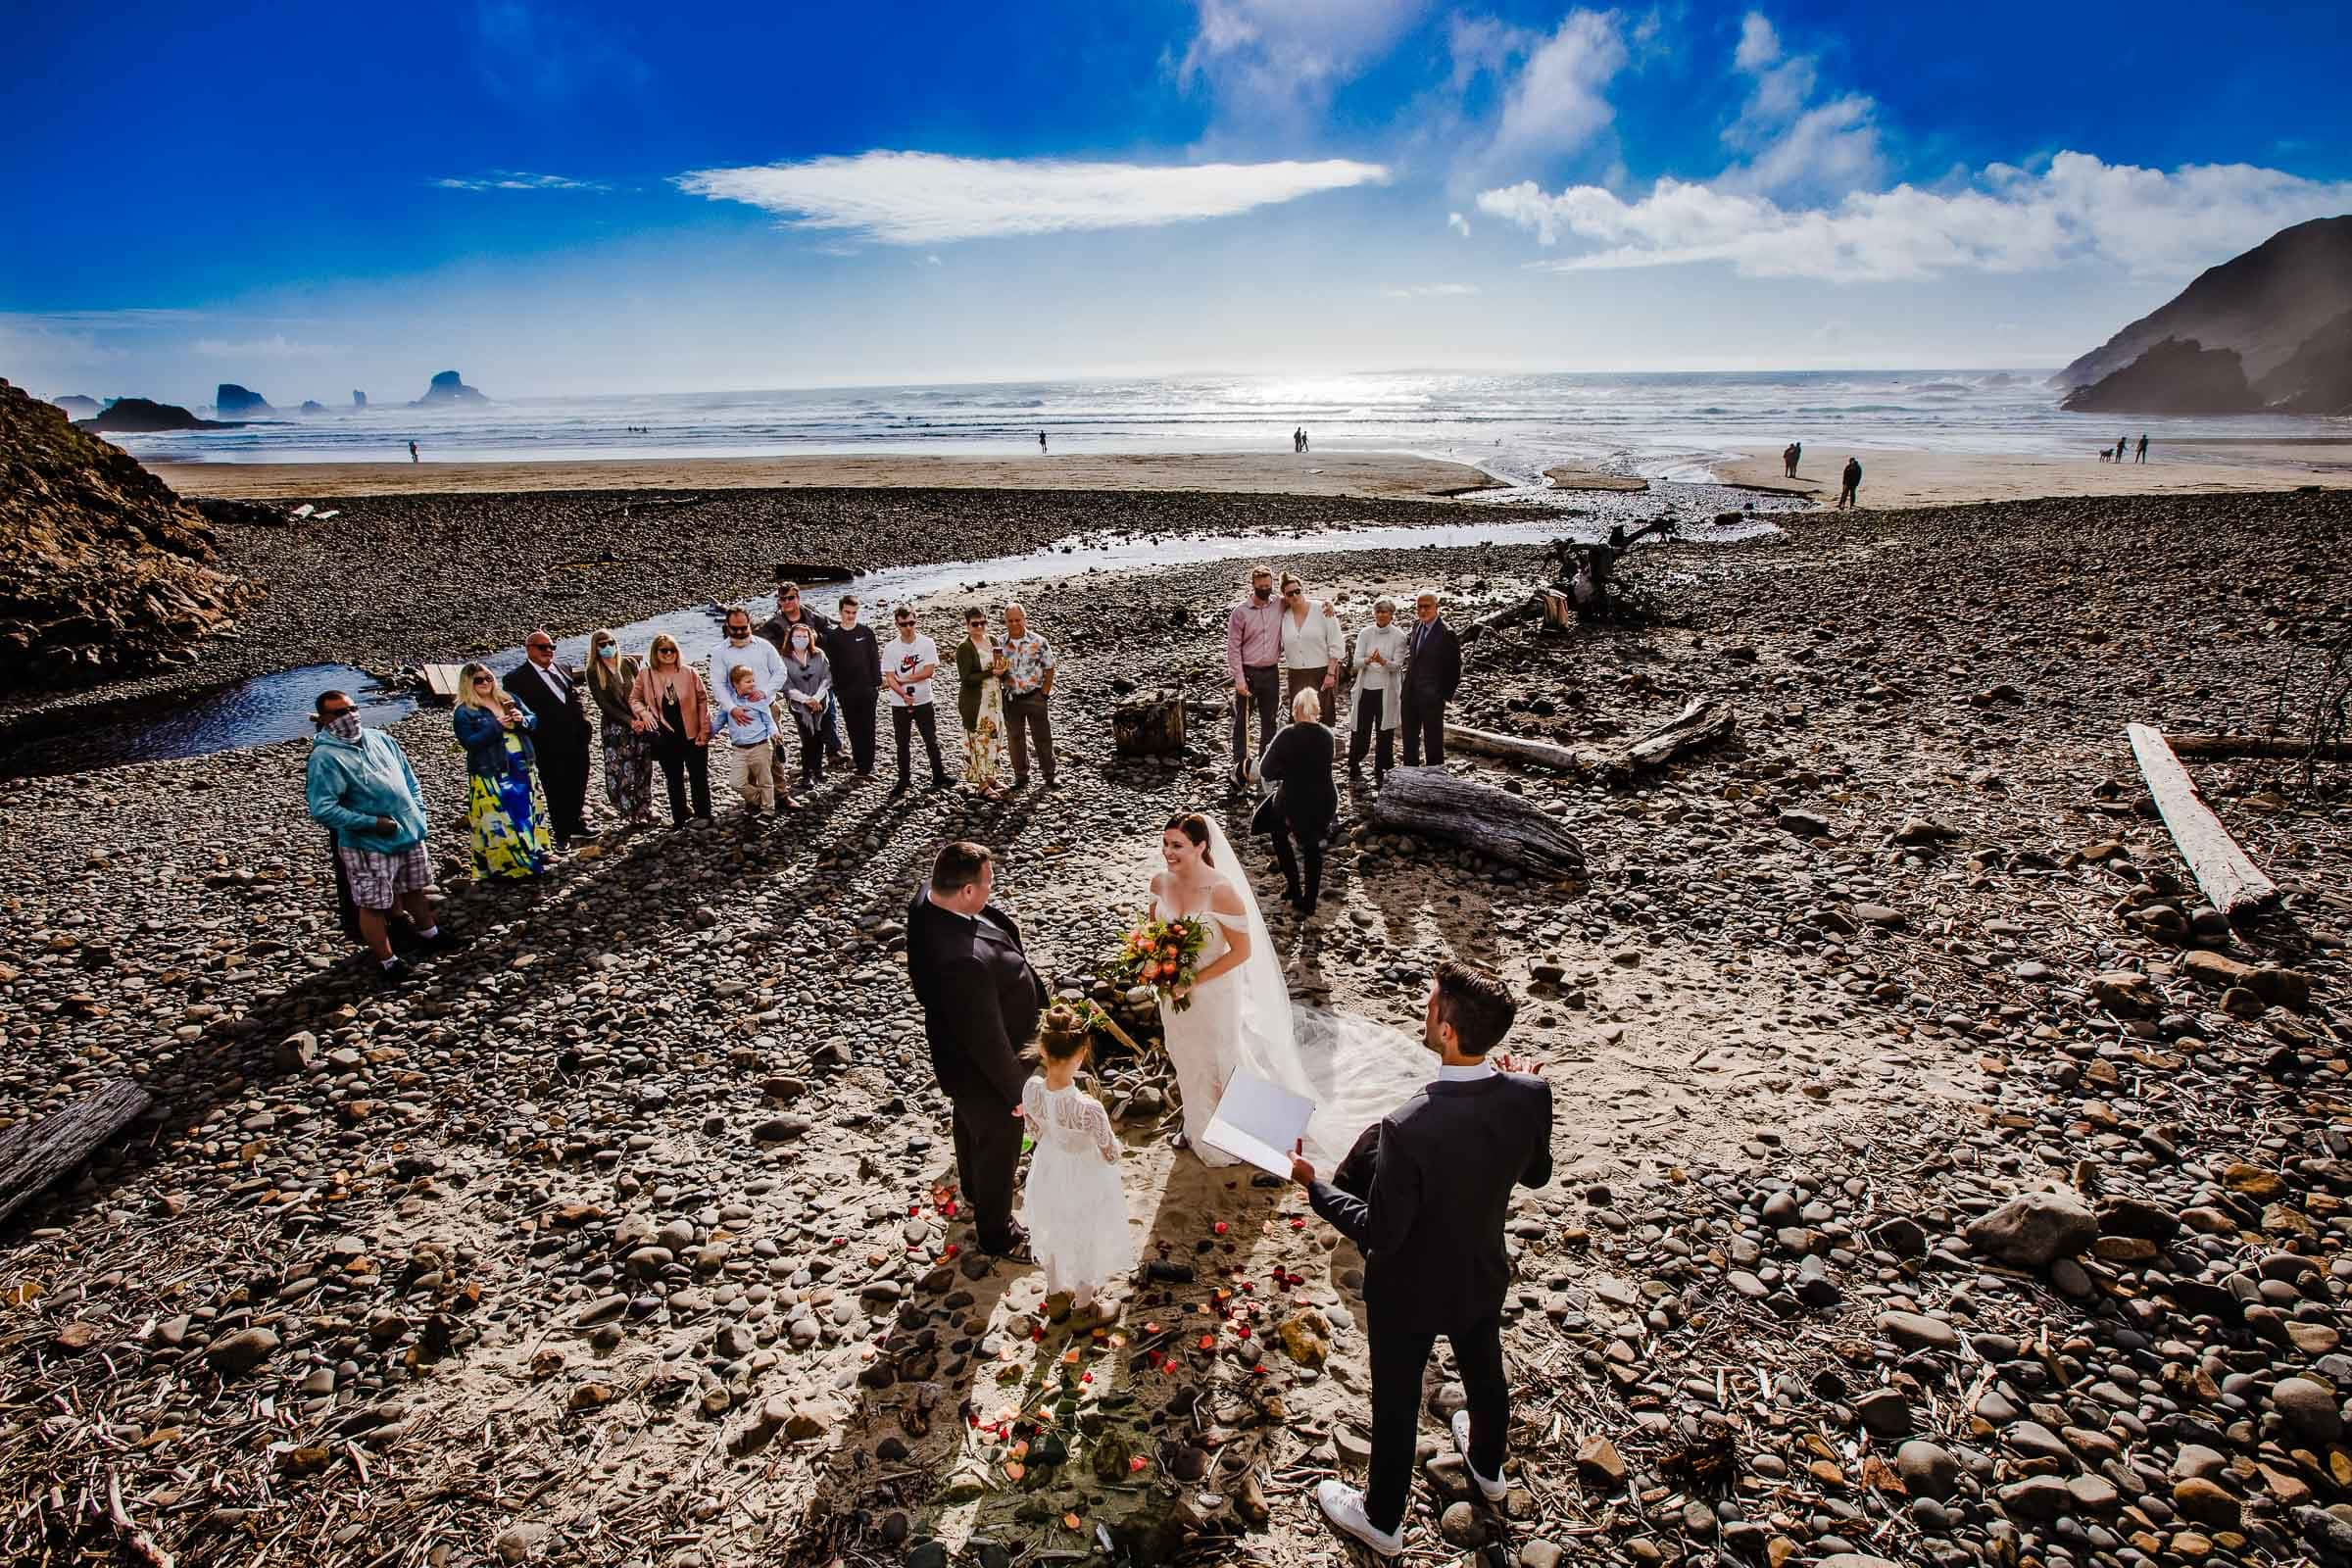 Oregon Coast Elopement ceremony at Cannon Beach with bride and groom and guests with ocean in background